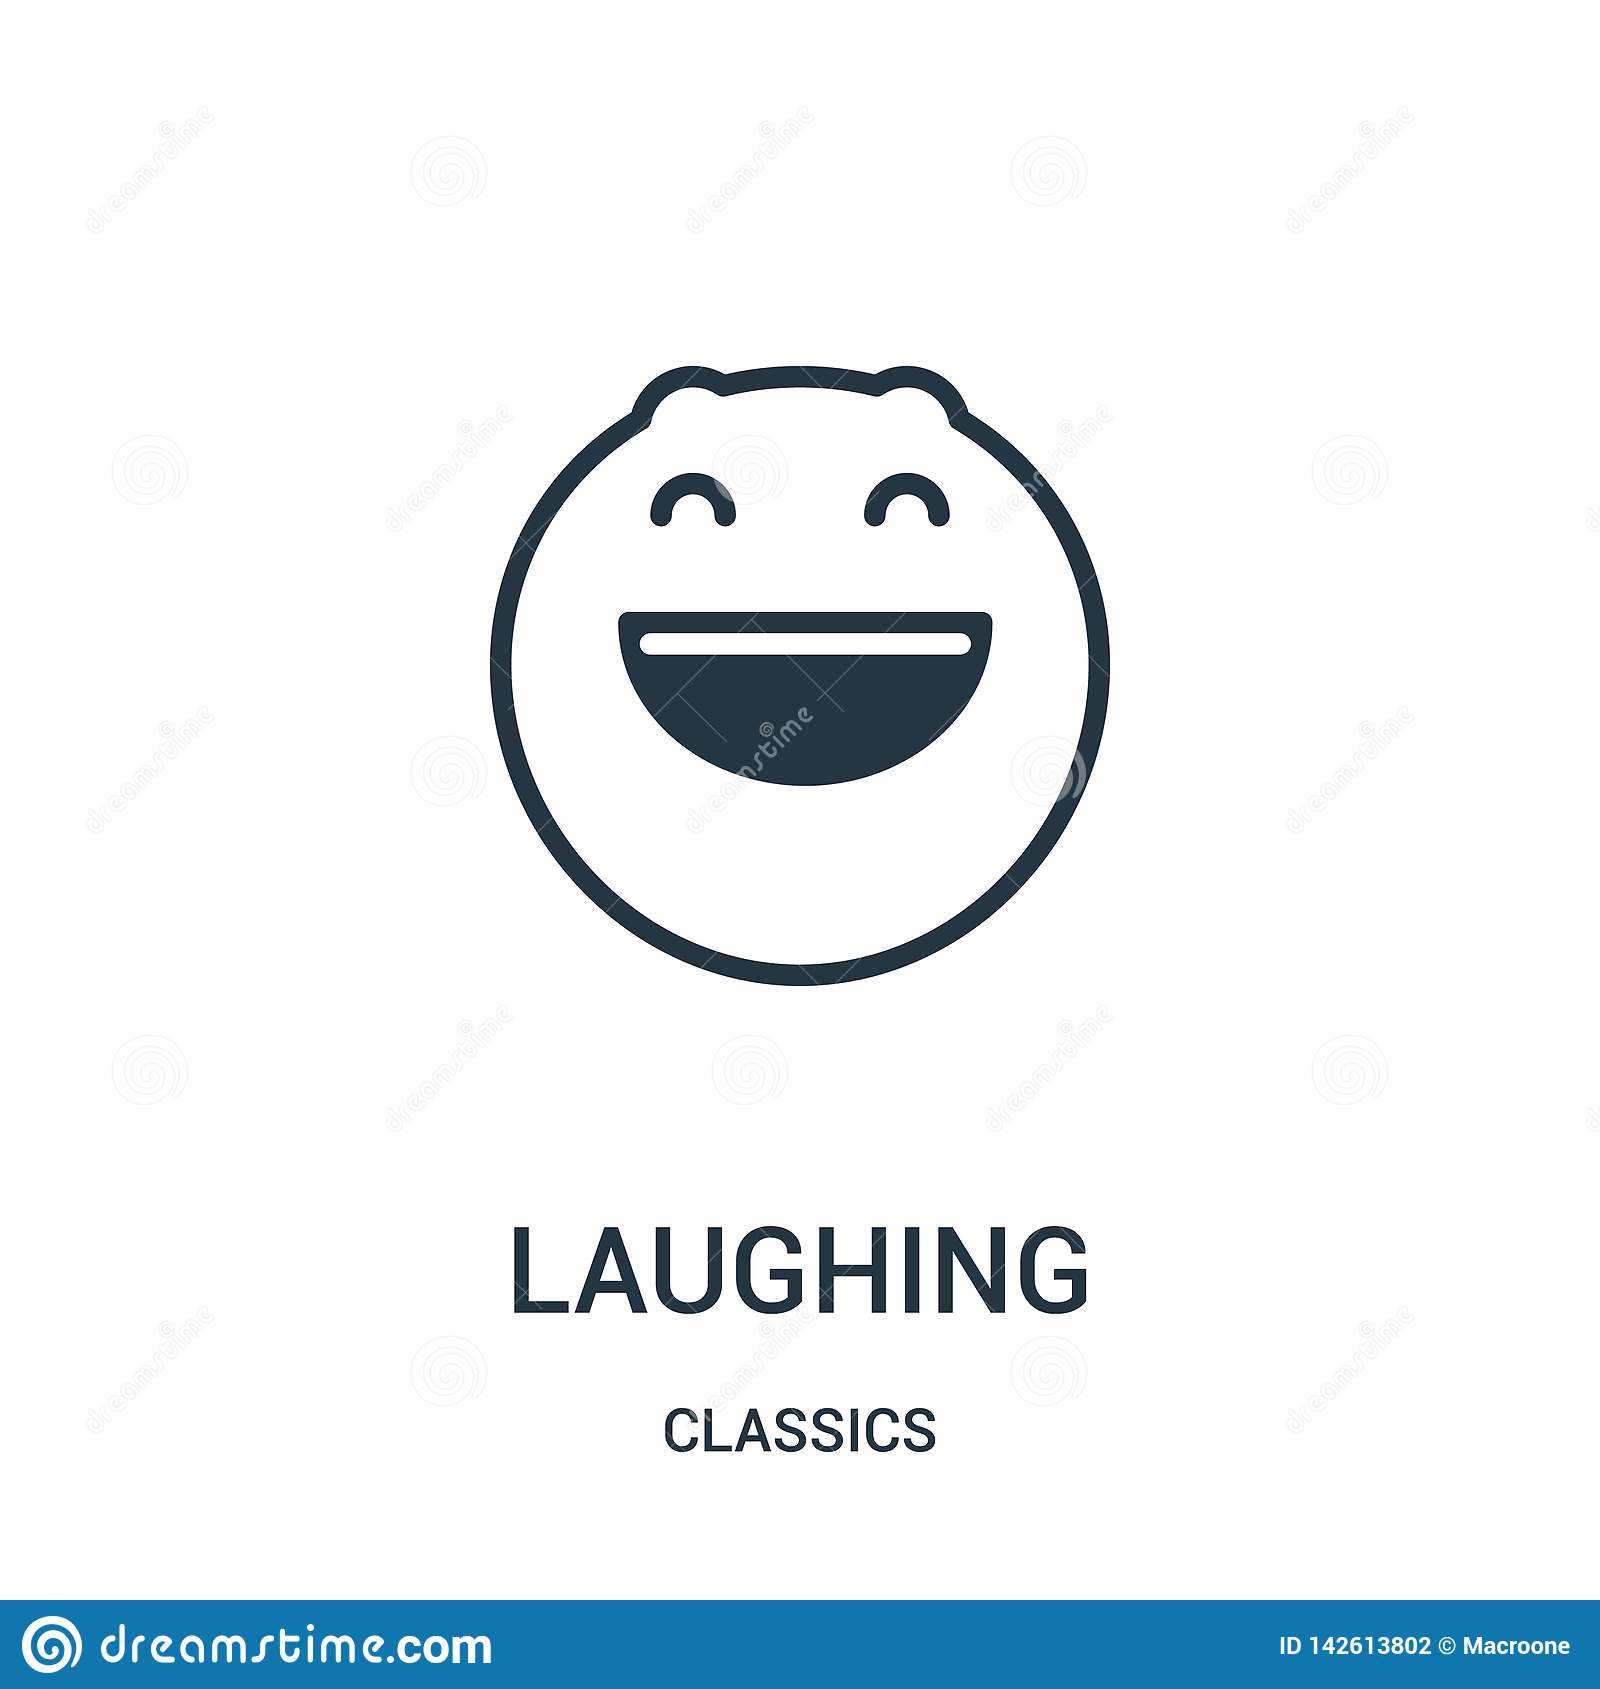 laughing icon vector from classics collection. Thin line laughing outline icon vector illustration. Linear symbol